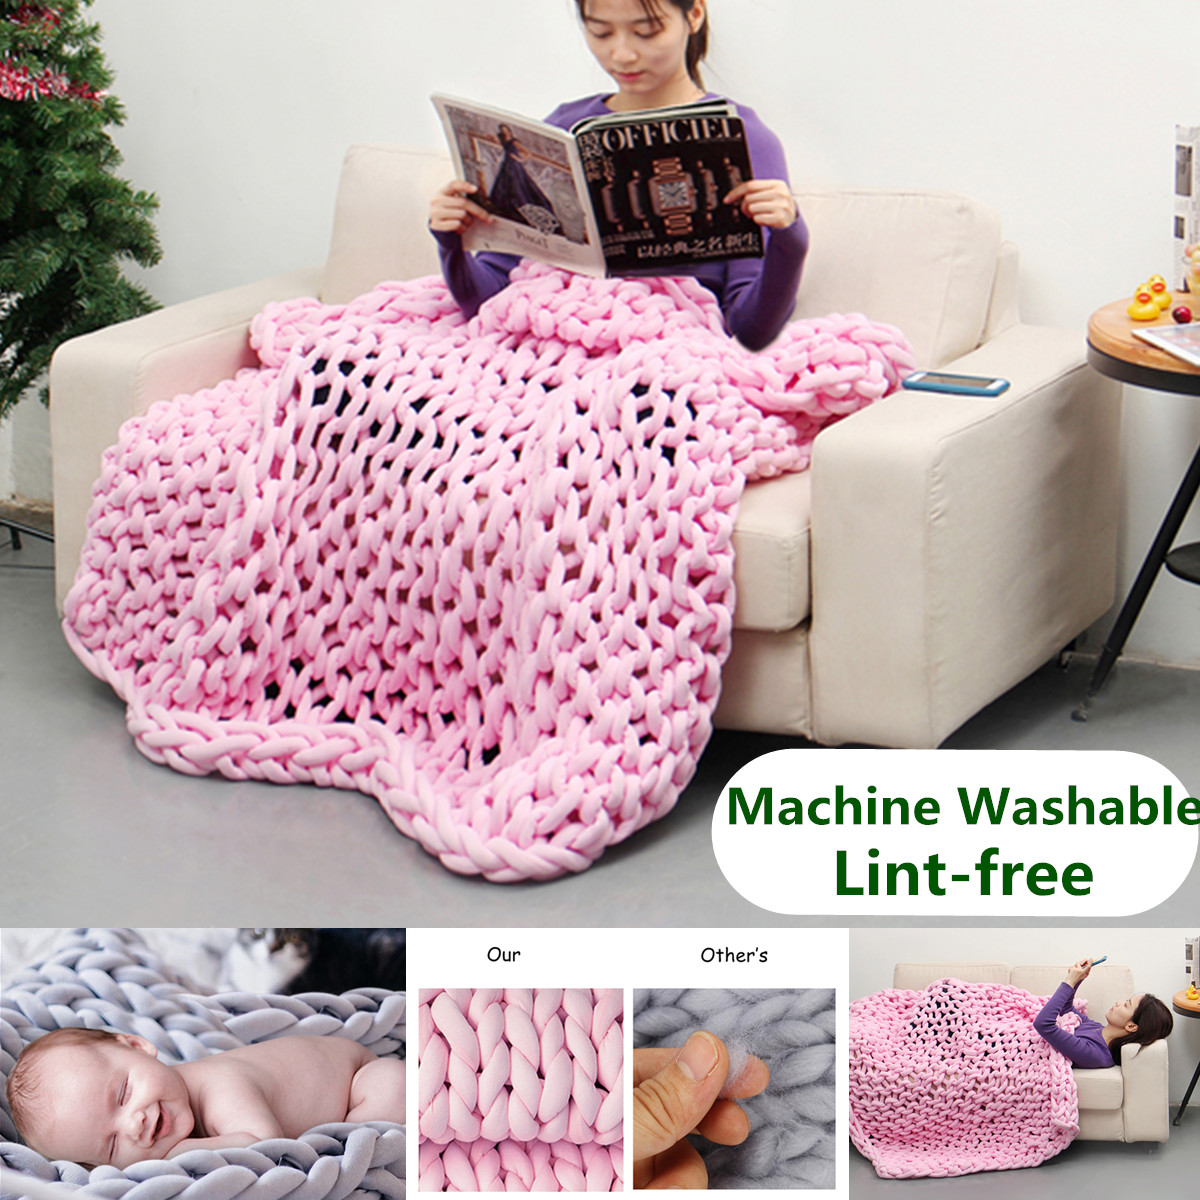 Hand-woven Cotton Soft Chunky Knitted Bedding Blanket Bulky Thick Yarn Sofa Throw Rug - Machine Washable Lint-free - 3 Sizes